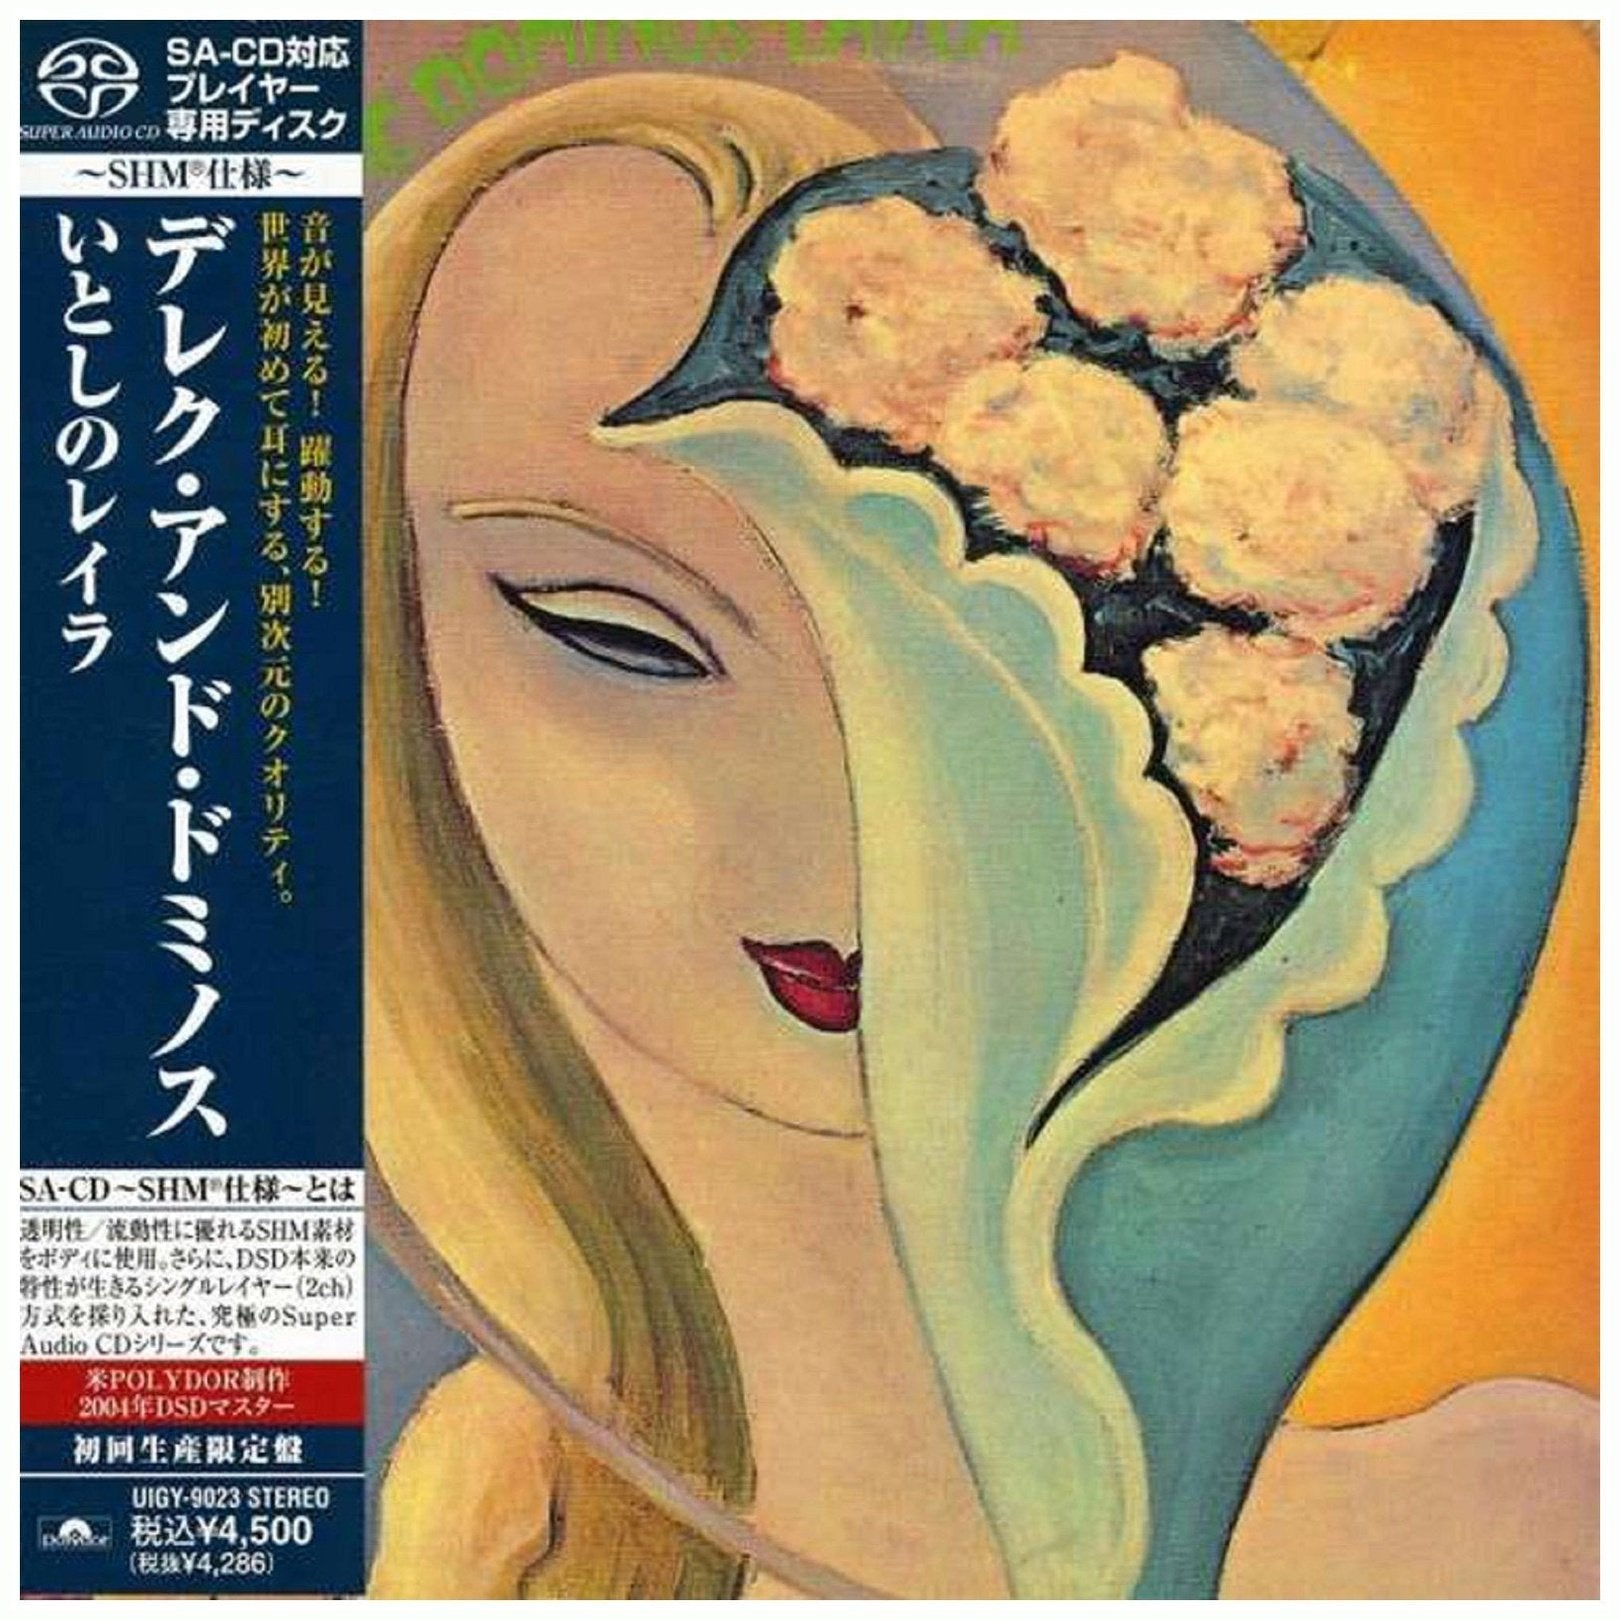 Derek & The Dominos - Derek And The Dominos - Layla - Japan Mini Lp Sacd-shm - Uigy-9023 - Cd